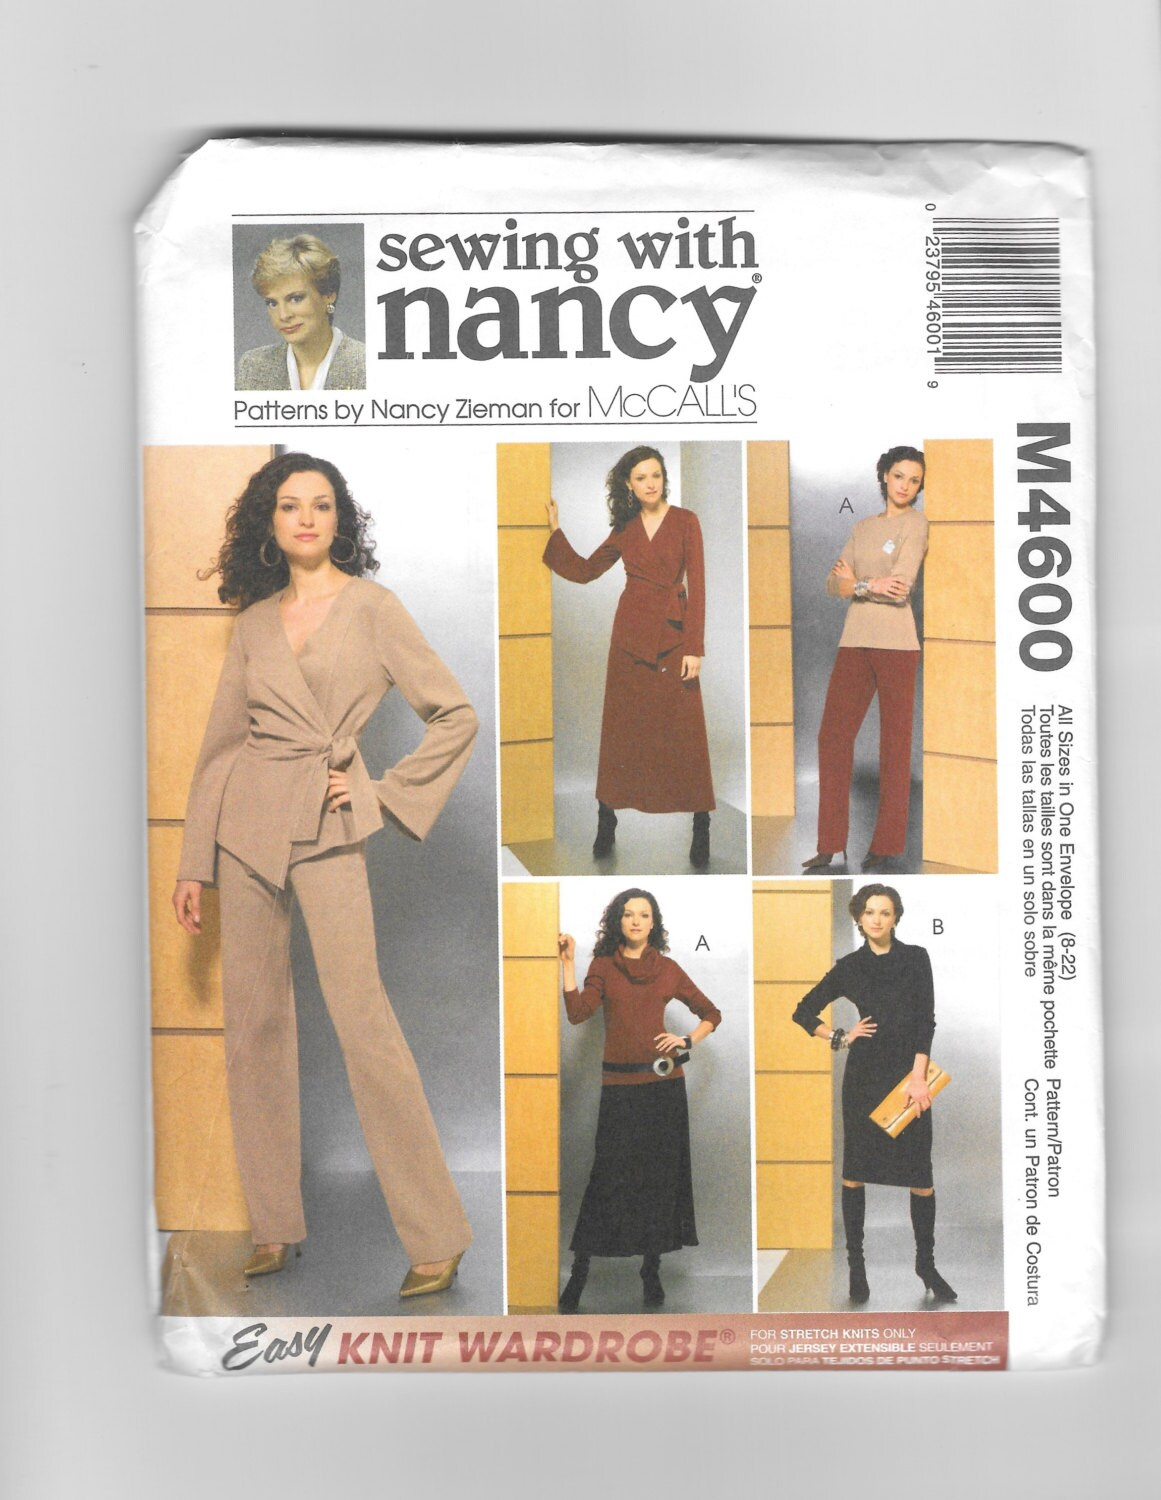 Mccalls m4600 sewing with nancy easy knit wardrobe patterns for sold by rosesandbees jeuxipadfo Image collections